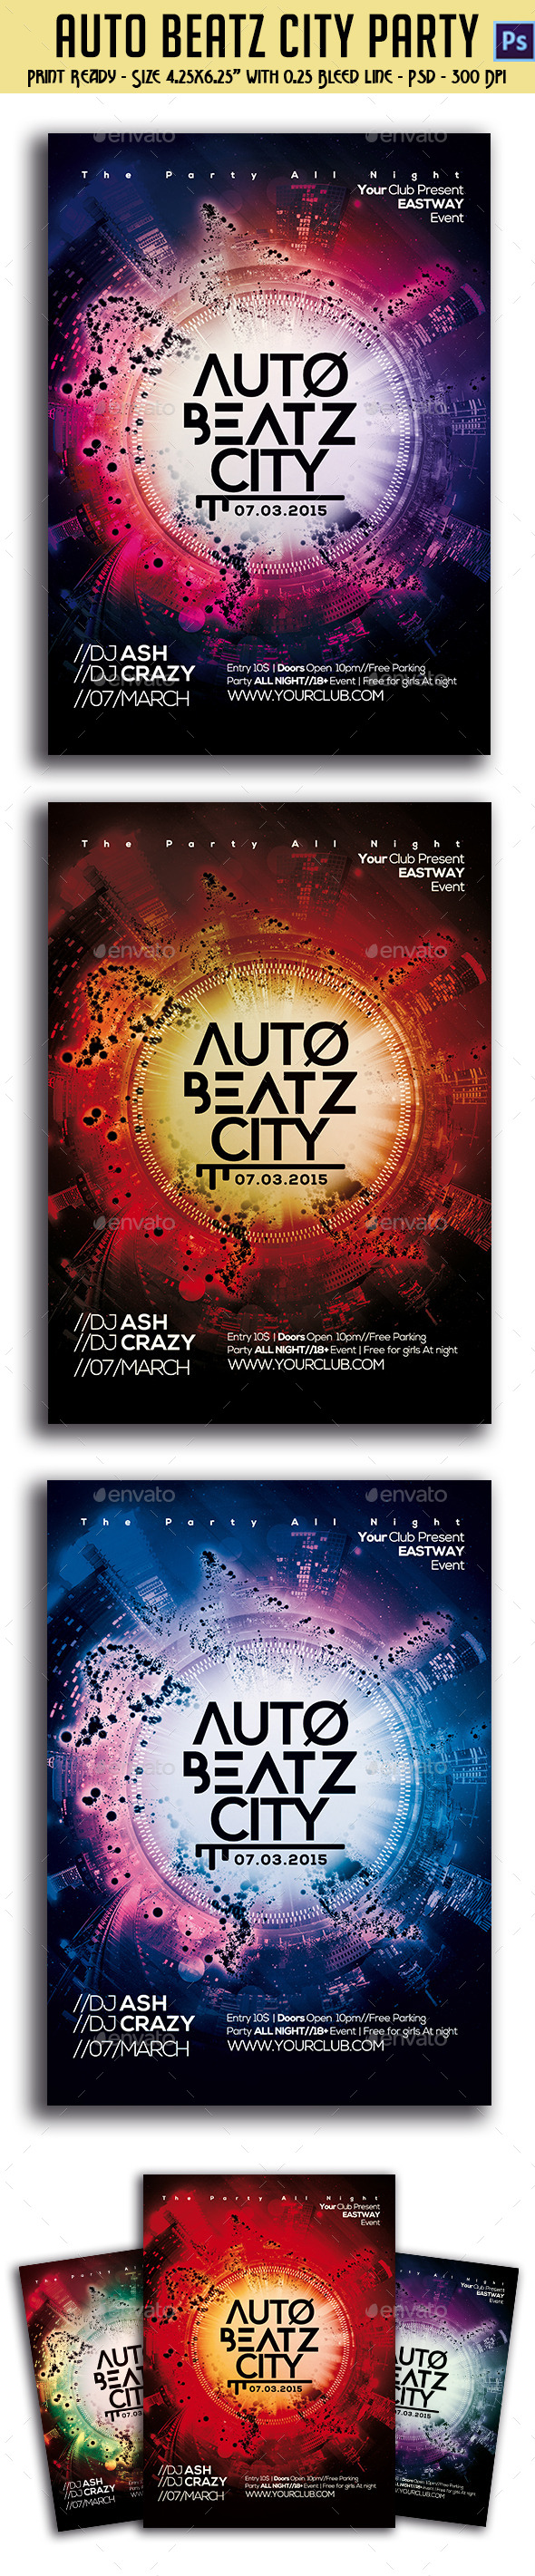 GraphicRiver Auto Beatz City Party Template 10619640